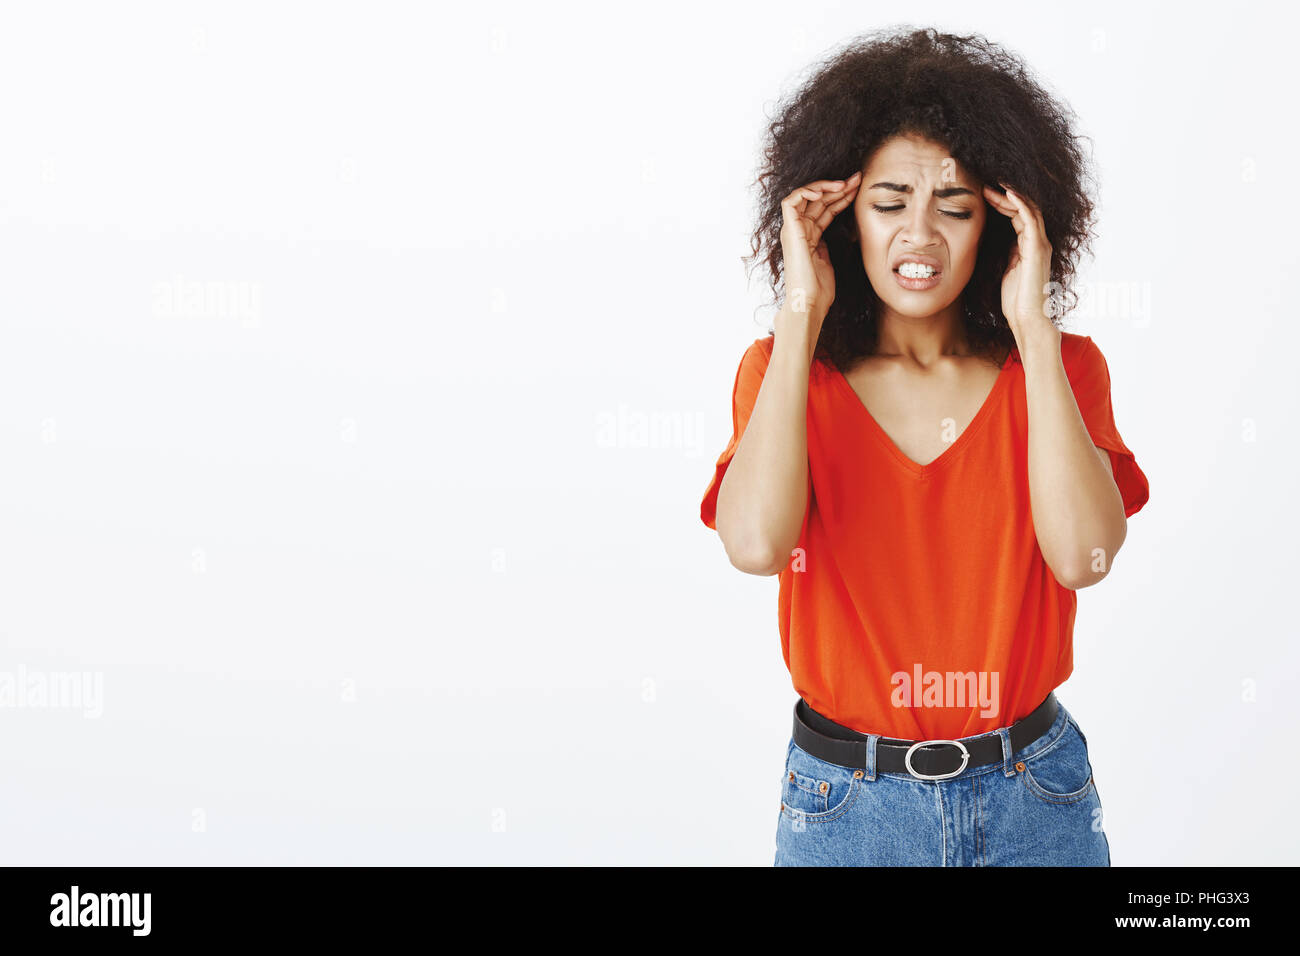 Poor girl having terrible headache. Studio shot of upset european female with afro haircut, touching temples and frowning, grimacing from pain, suffering migraine and standing unfocused - Stock Image